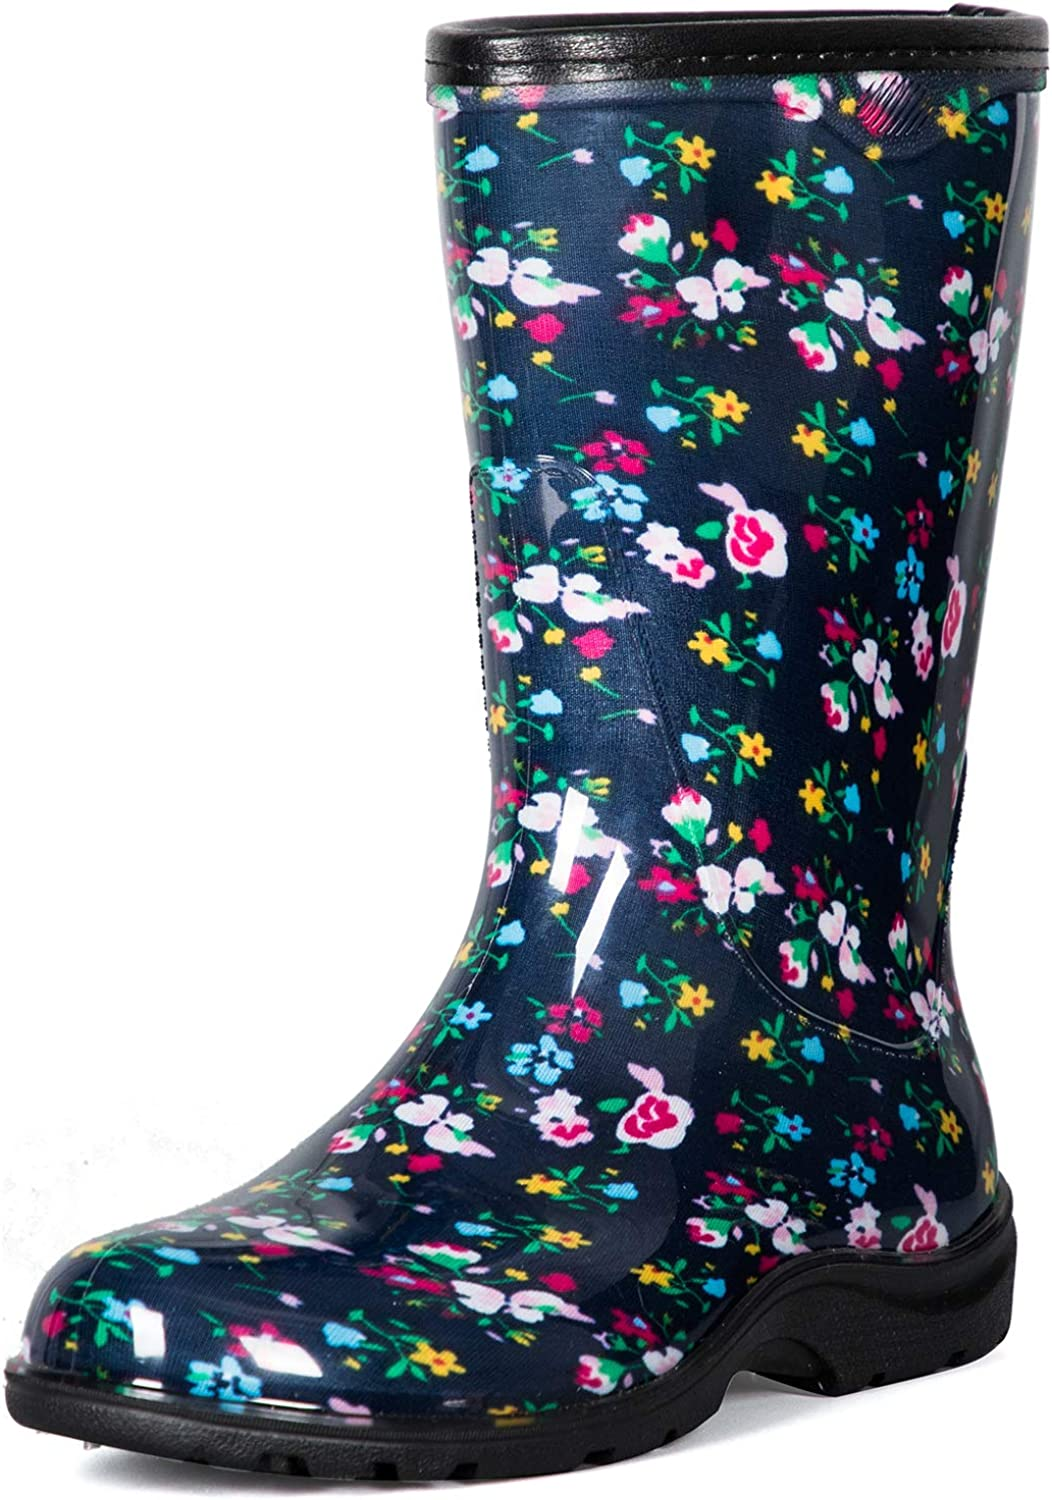 K KomForme Women's Waterproof Rain Boots - Colorful Printed Mid-Calf Garden Shoes with Comfort Insole Ladies Short Rain Boots